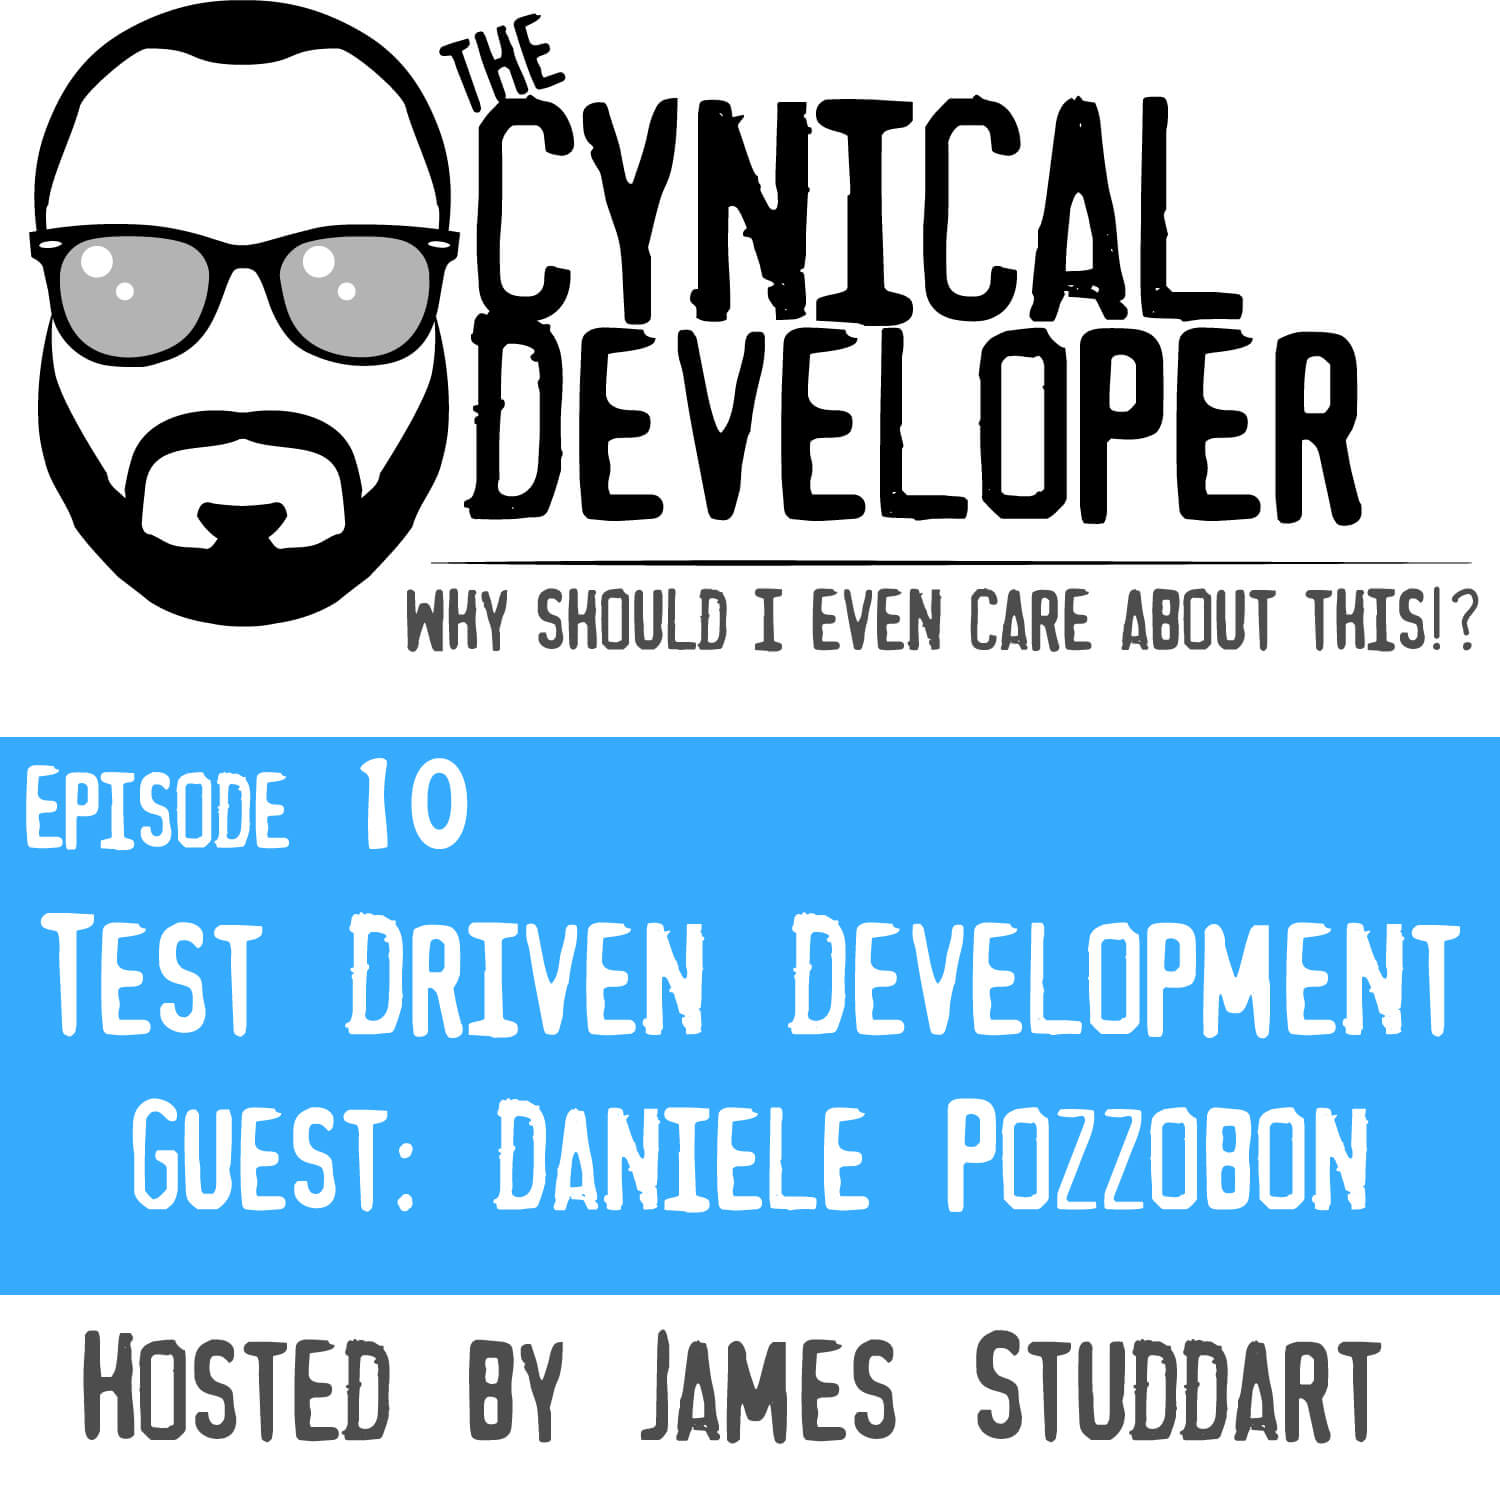 Episode 10 - Test Driven Development